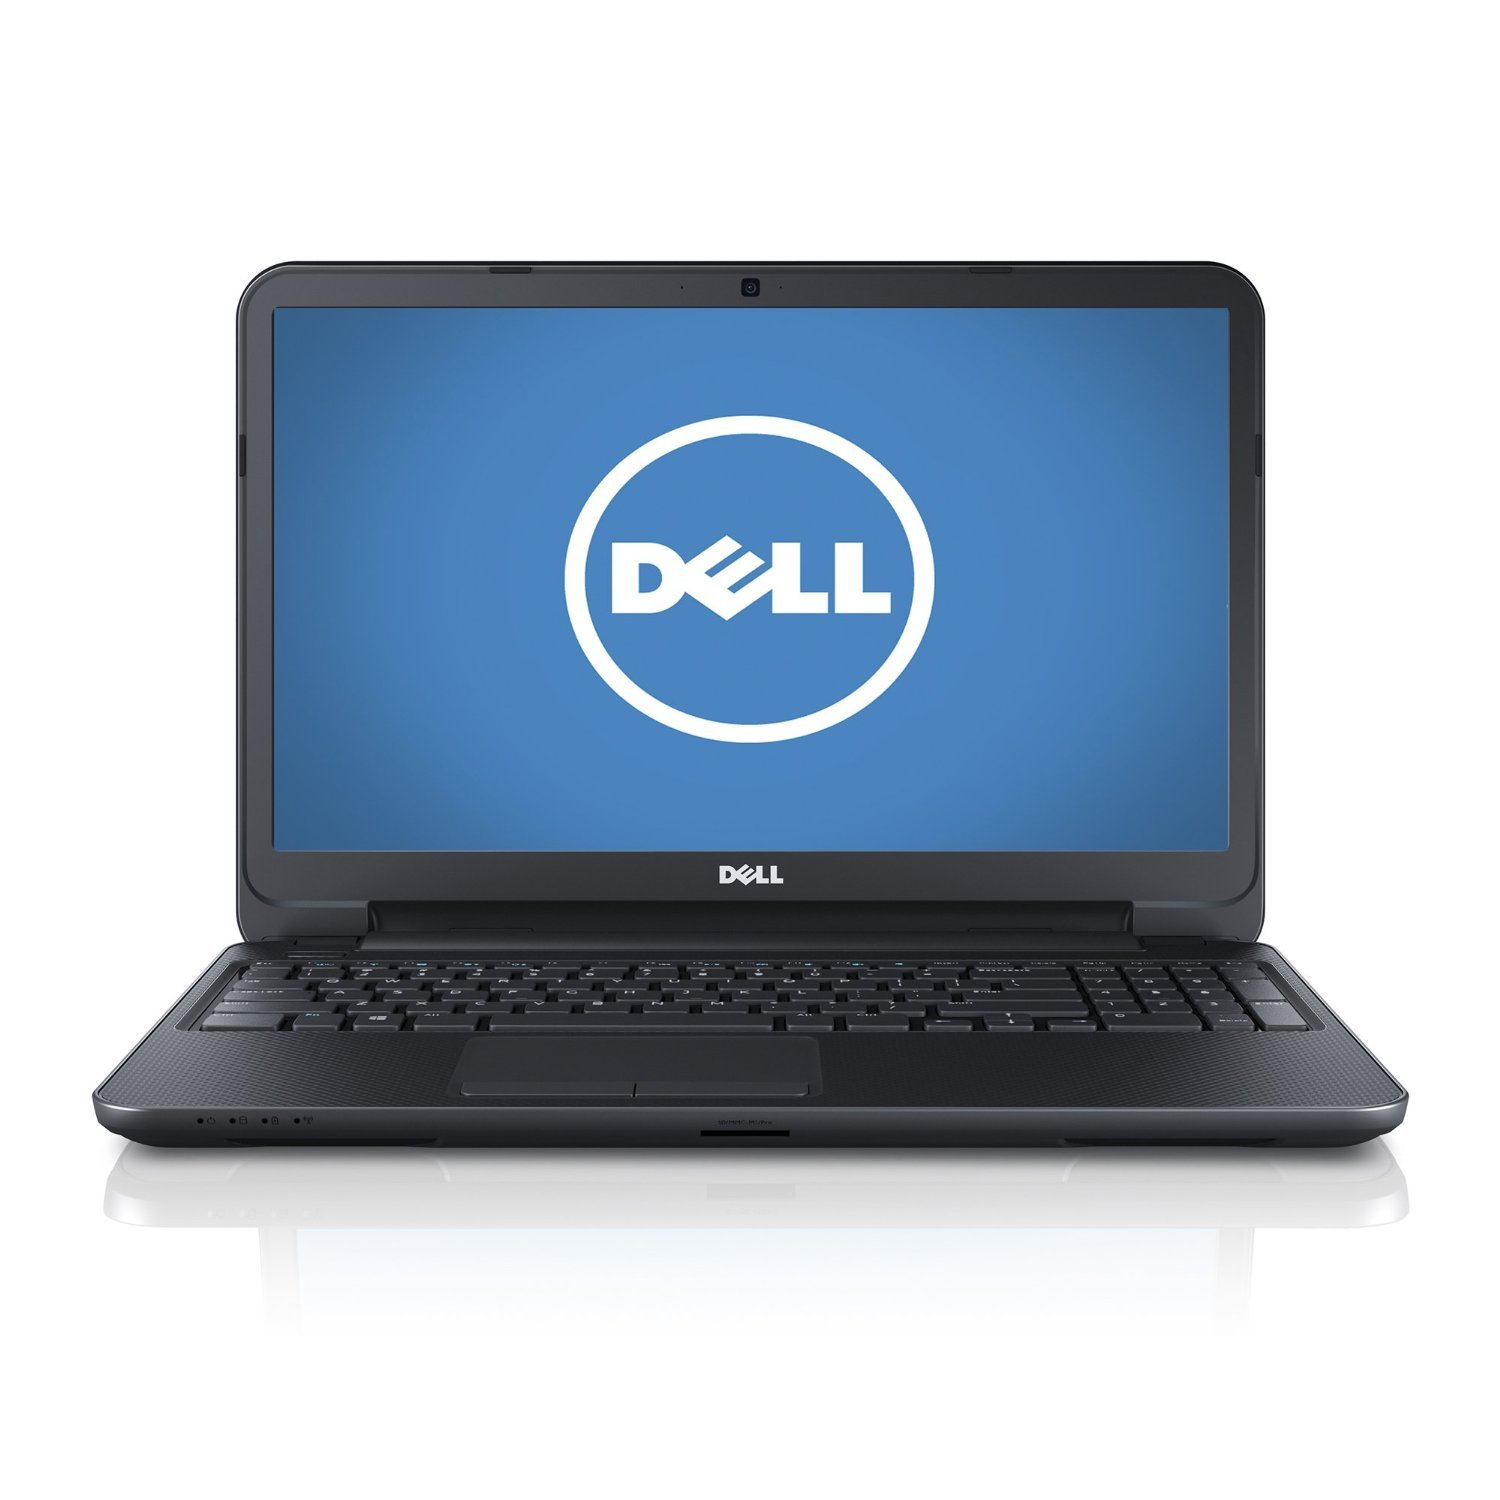 Dell Inspiron i15RV-1333BLK 15.6-inch Laptop PC